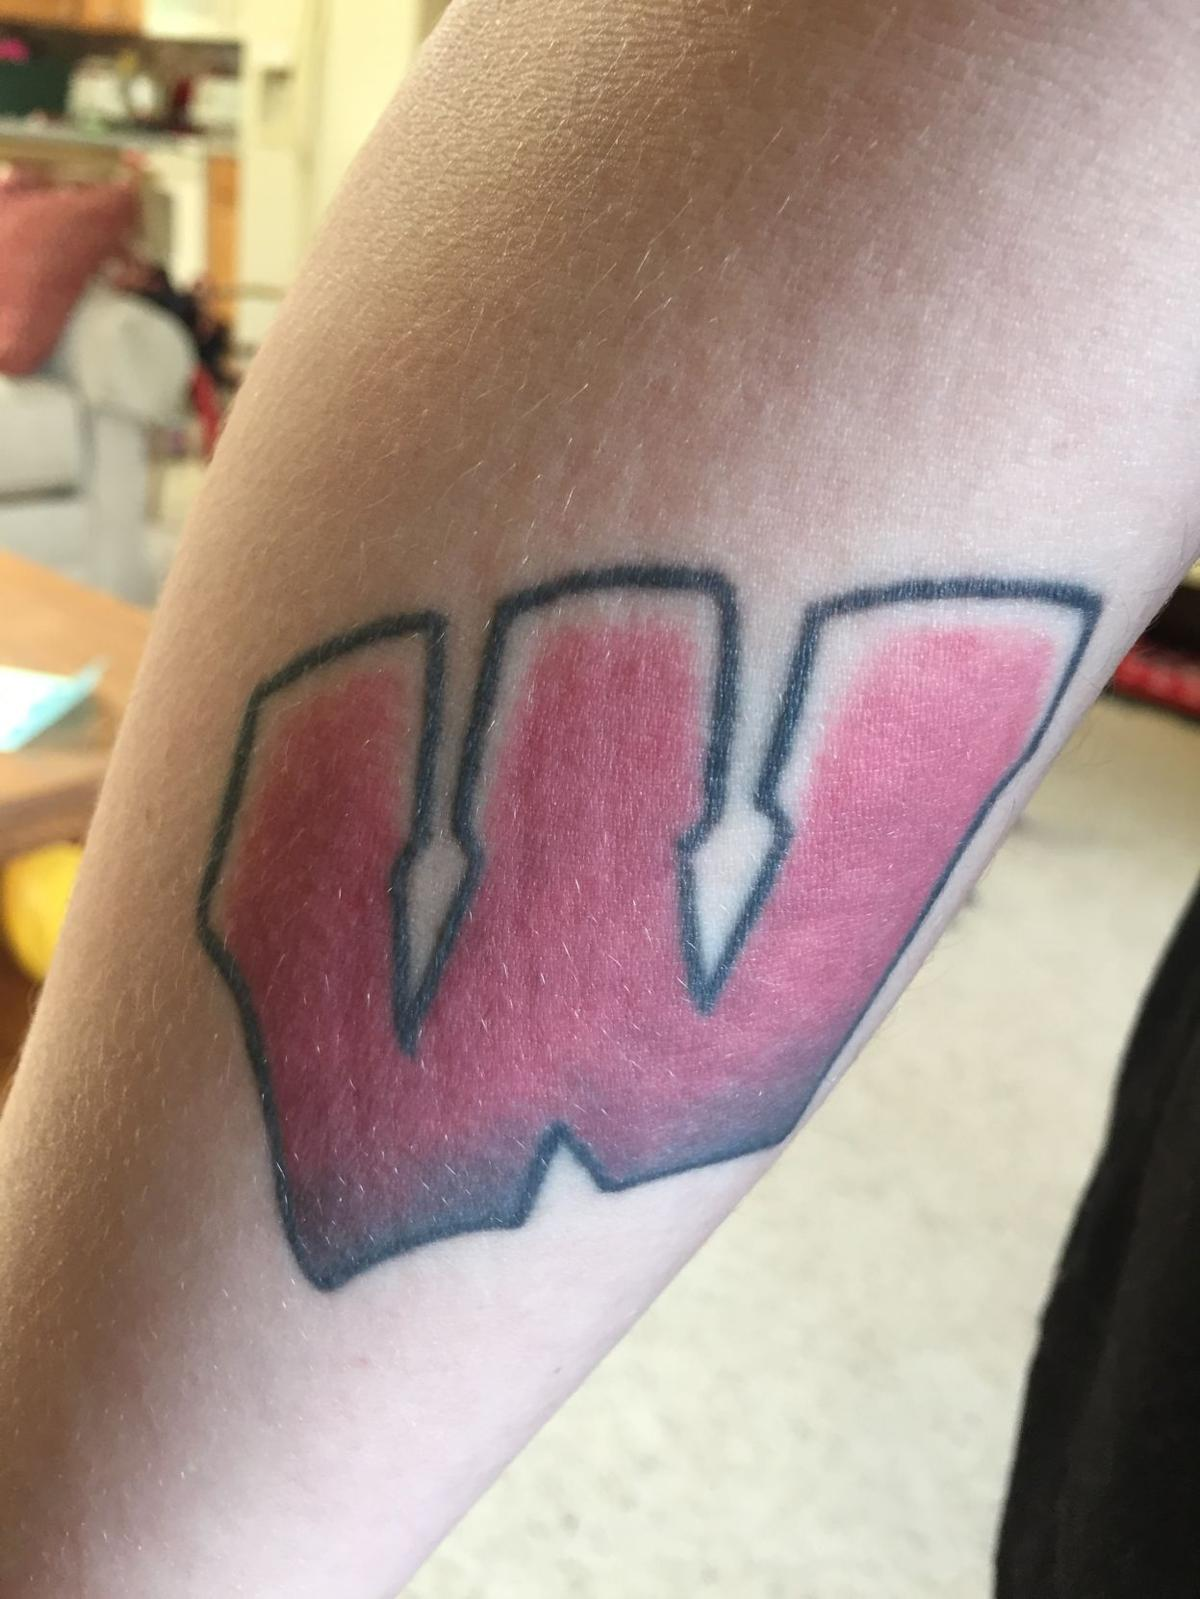 bf334c714 We asked you to send us your Wisconsin tattoos. Your response blew us away.  | Entertainment | madison.com